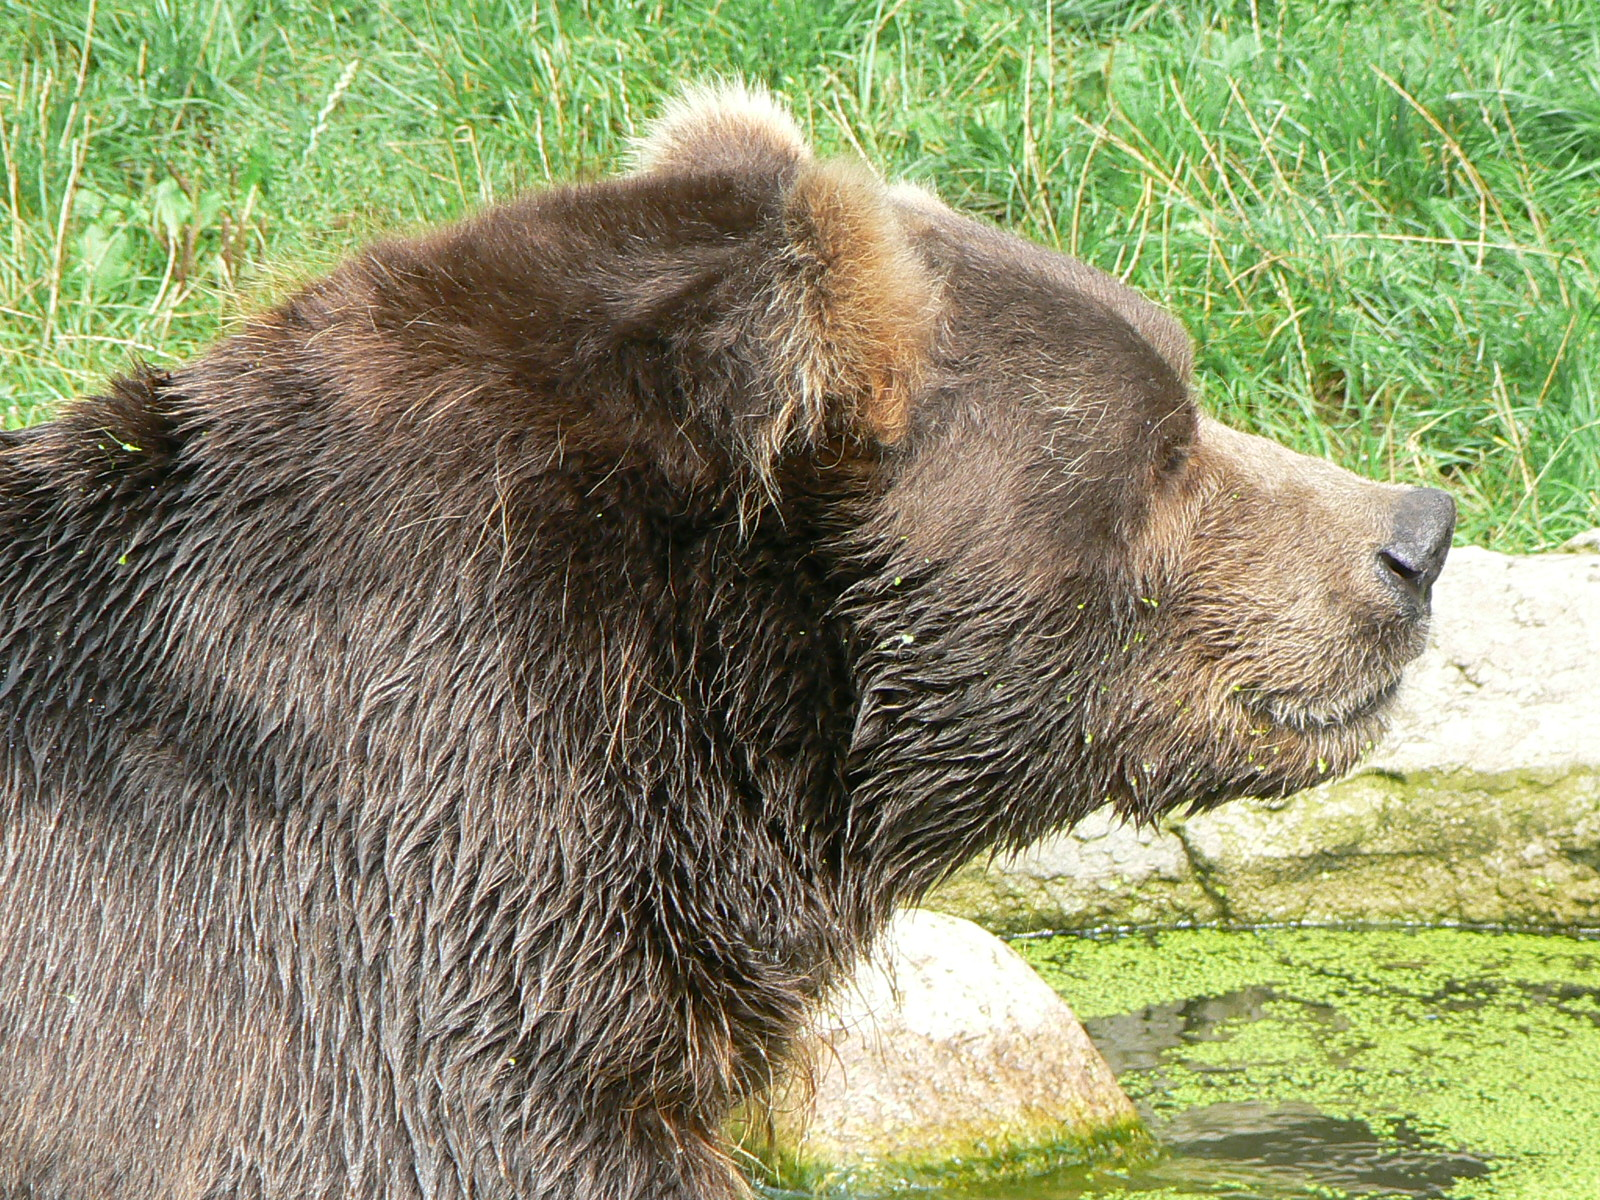 Black bear head profile - photo#24